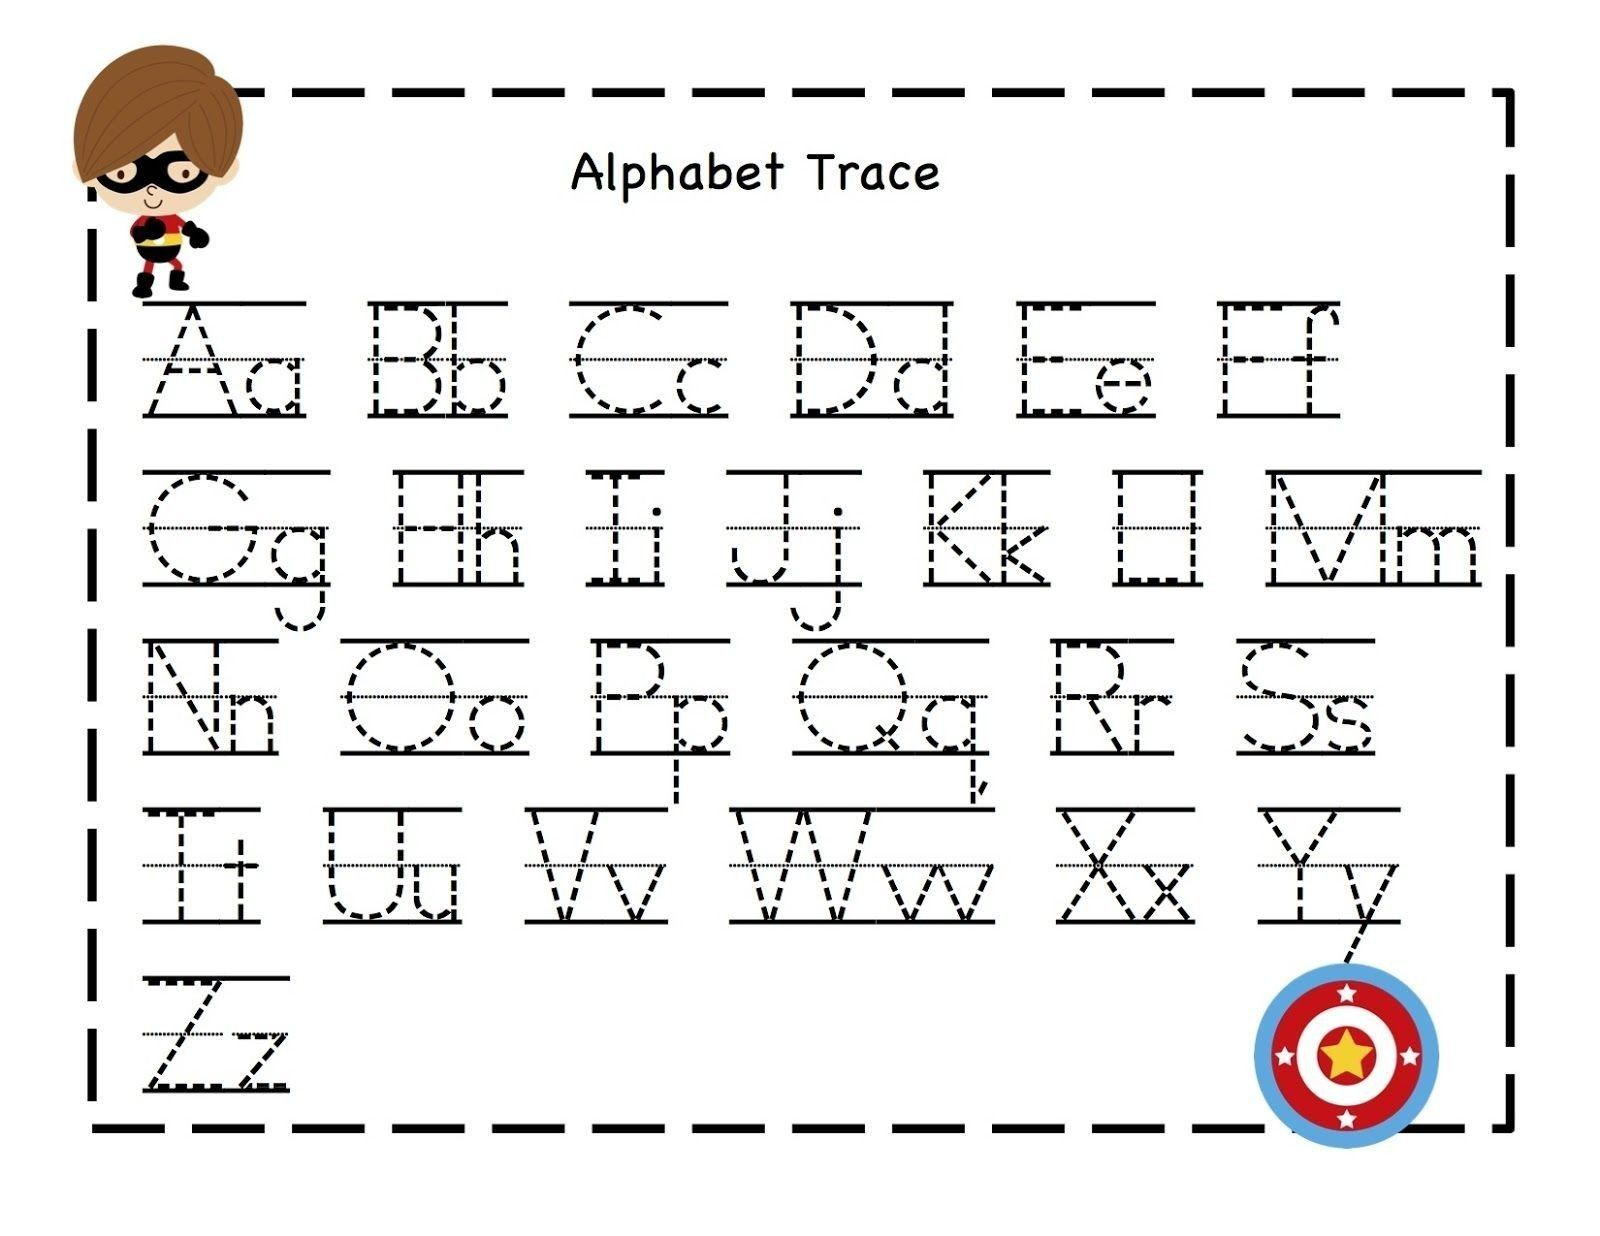 Tracing Worksheets For 3 Year Olds | Printable Worksheets inside Alphabet Worksheets For 3 Year Olds